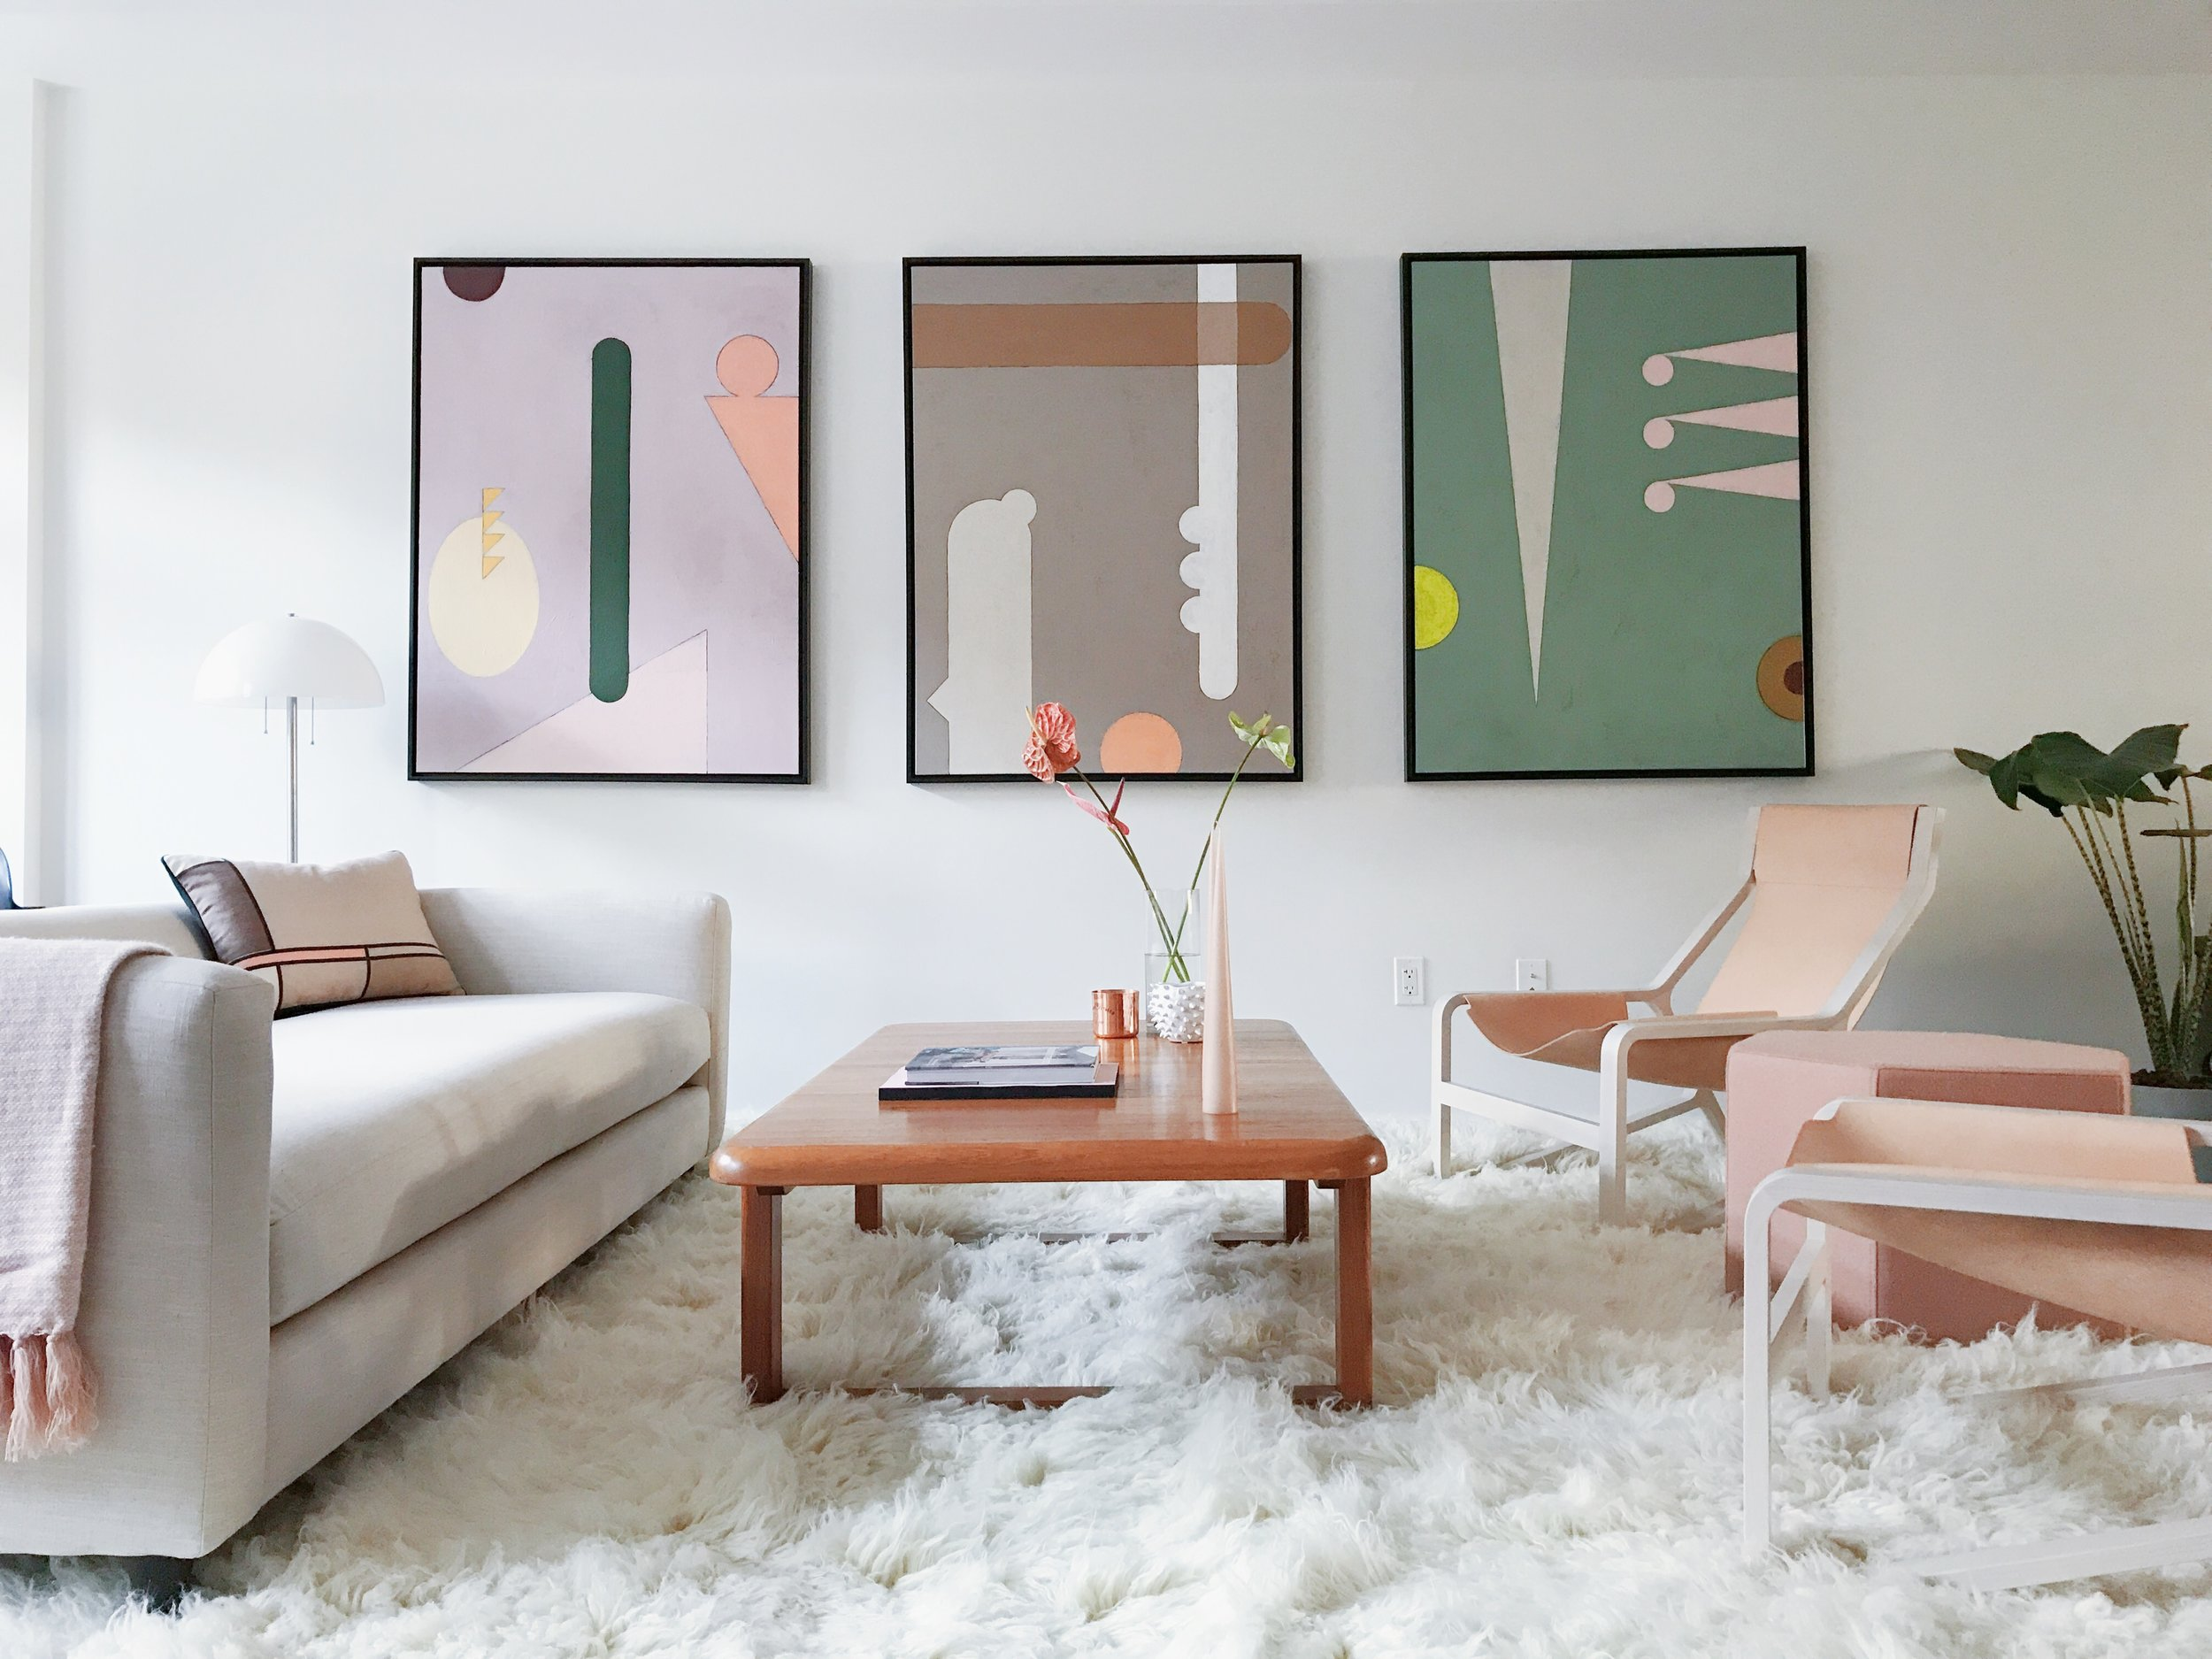 HOVEY DESIGN - 131 South 1st - Staging - Triptych HHH.JPG